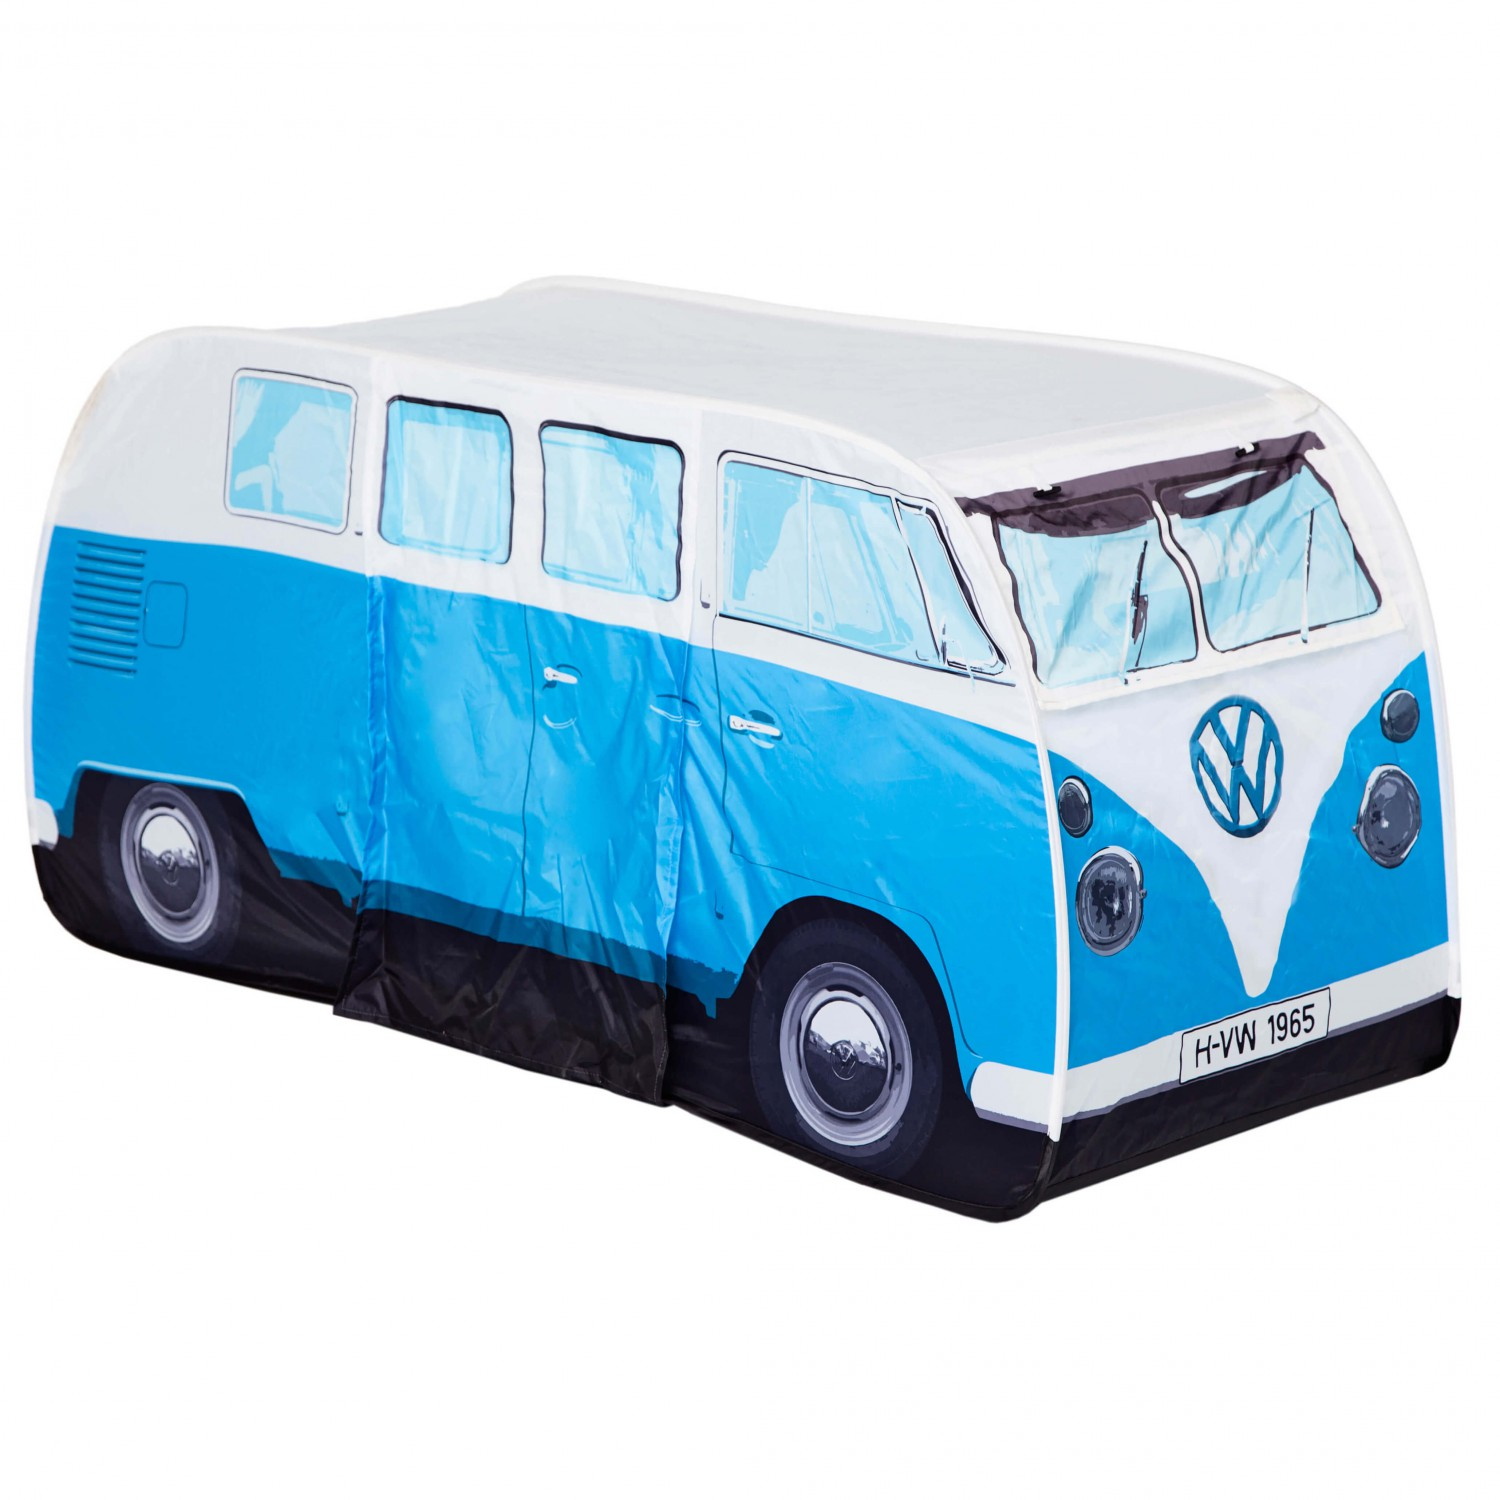 The Monster Factory - VW C&er Van Kid Pop Up Play Tent ...  sc 1 st  Alpinetrek & The Monster Factory VW Camper Van Kid Pop Up Play Tent | Free UK ...